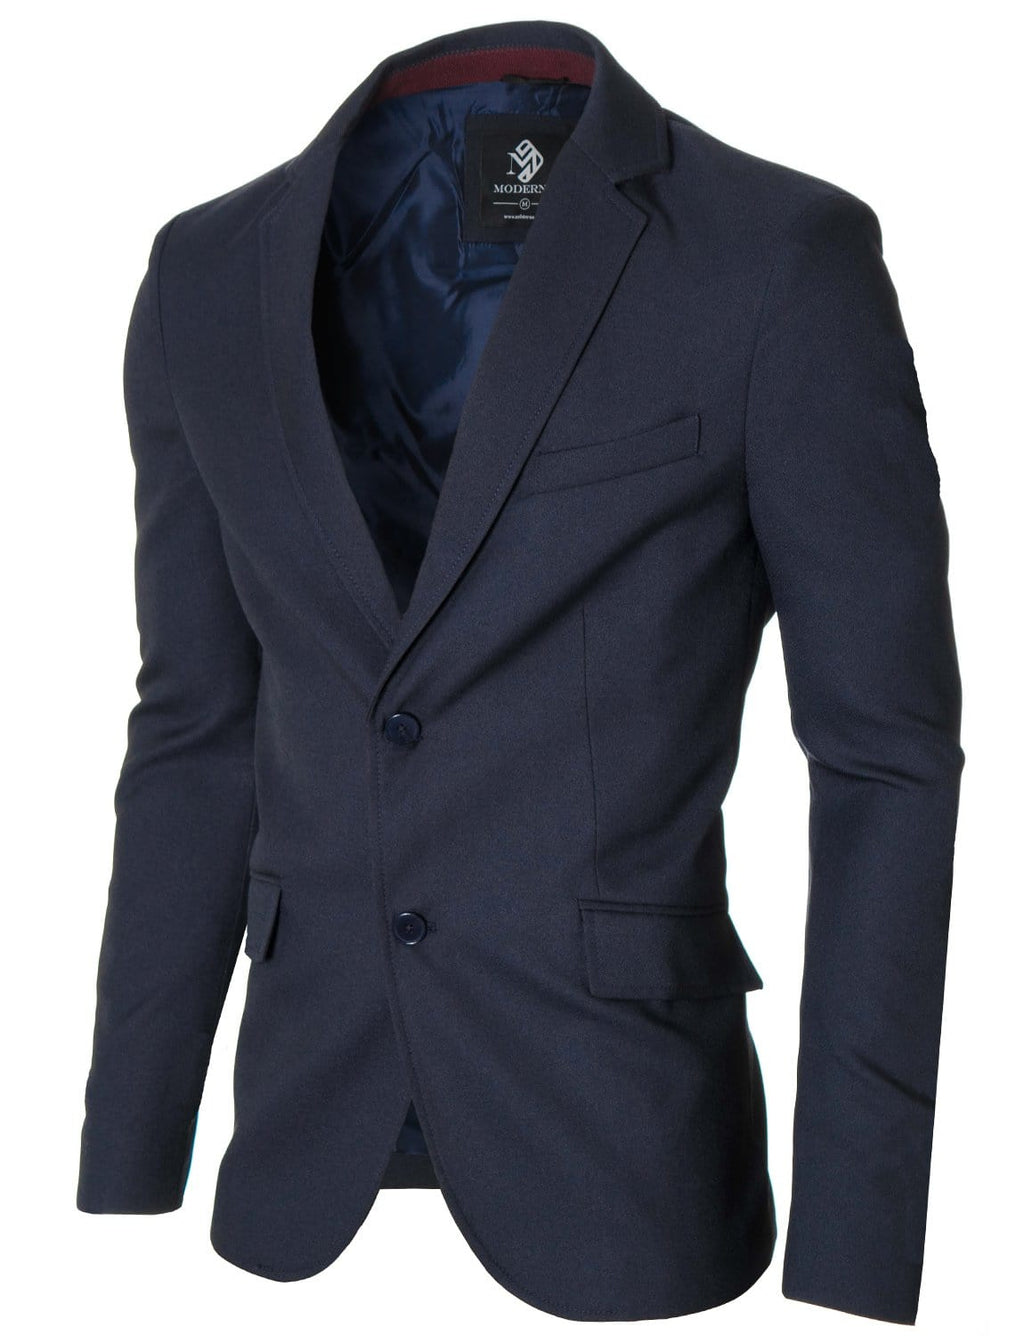 Mens Slim Fit Casual Blazer with Contrast Details Navy (MOD14514B)